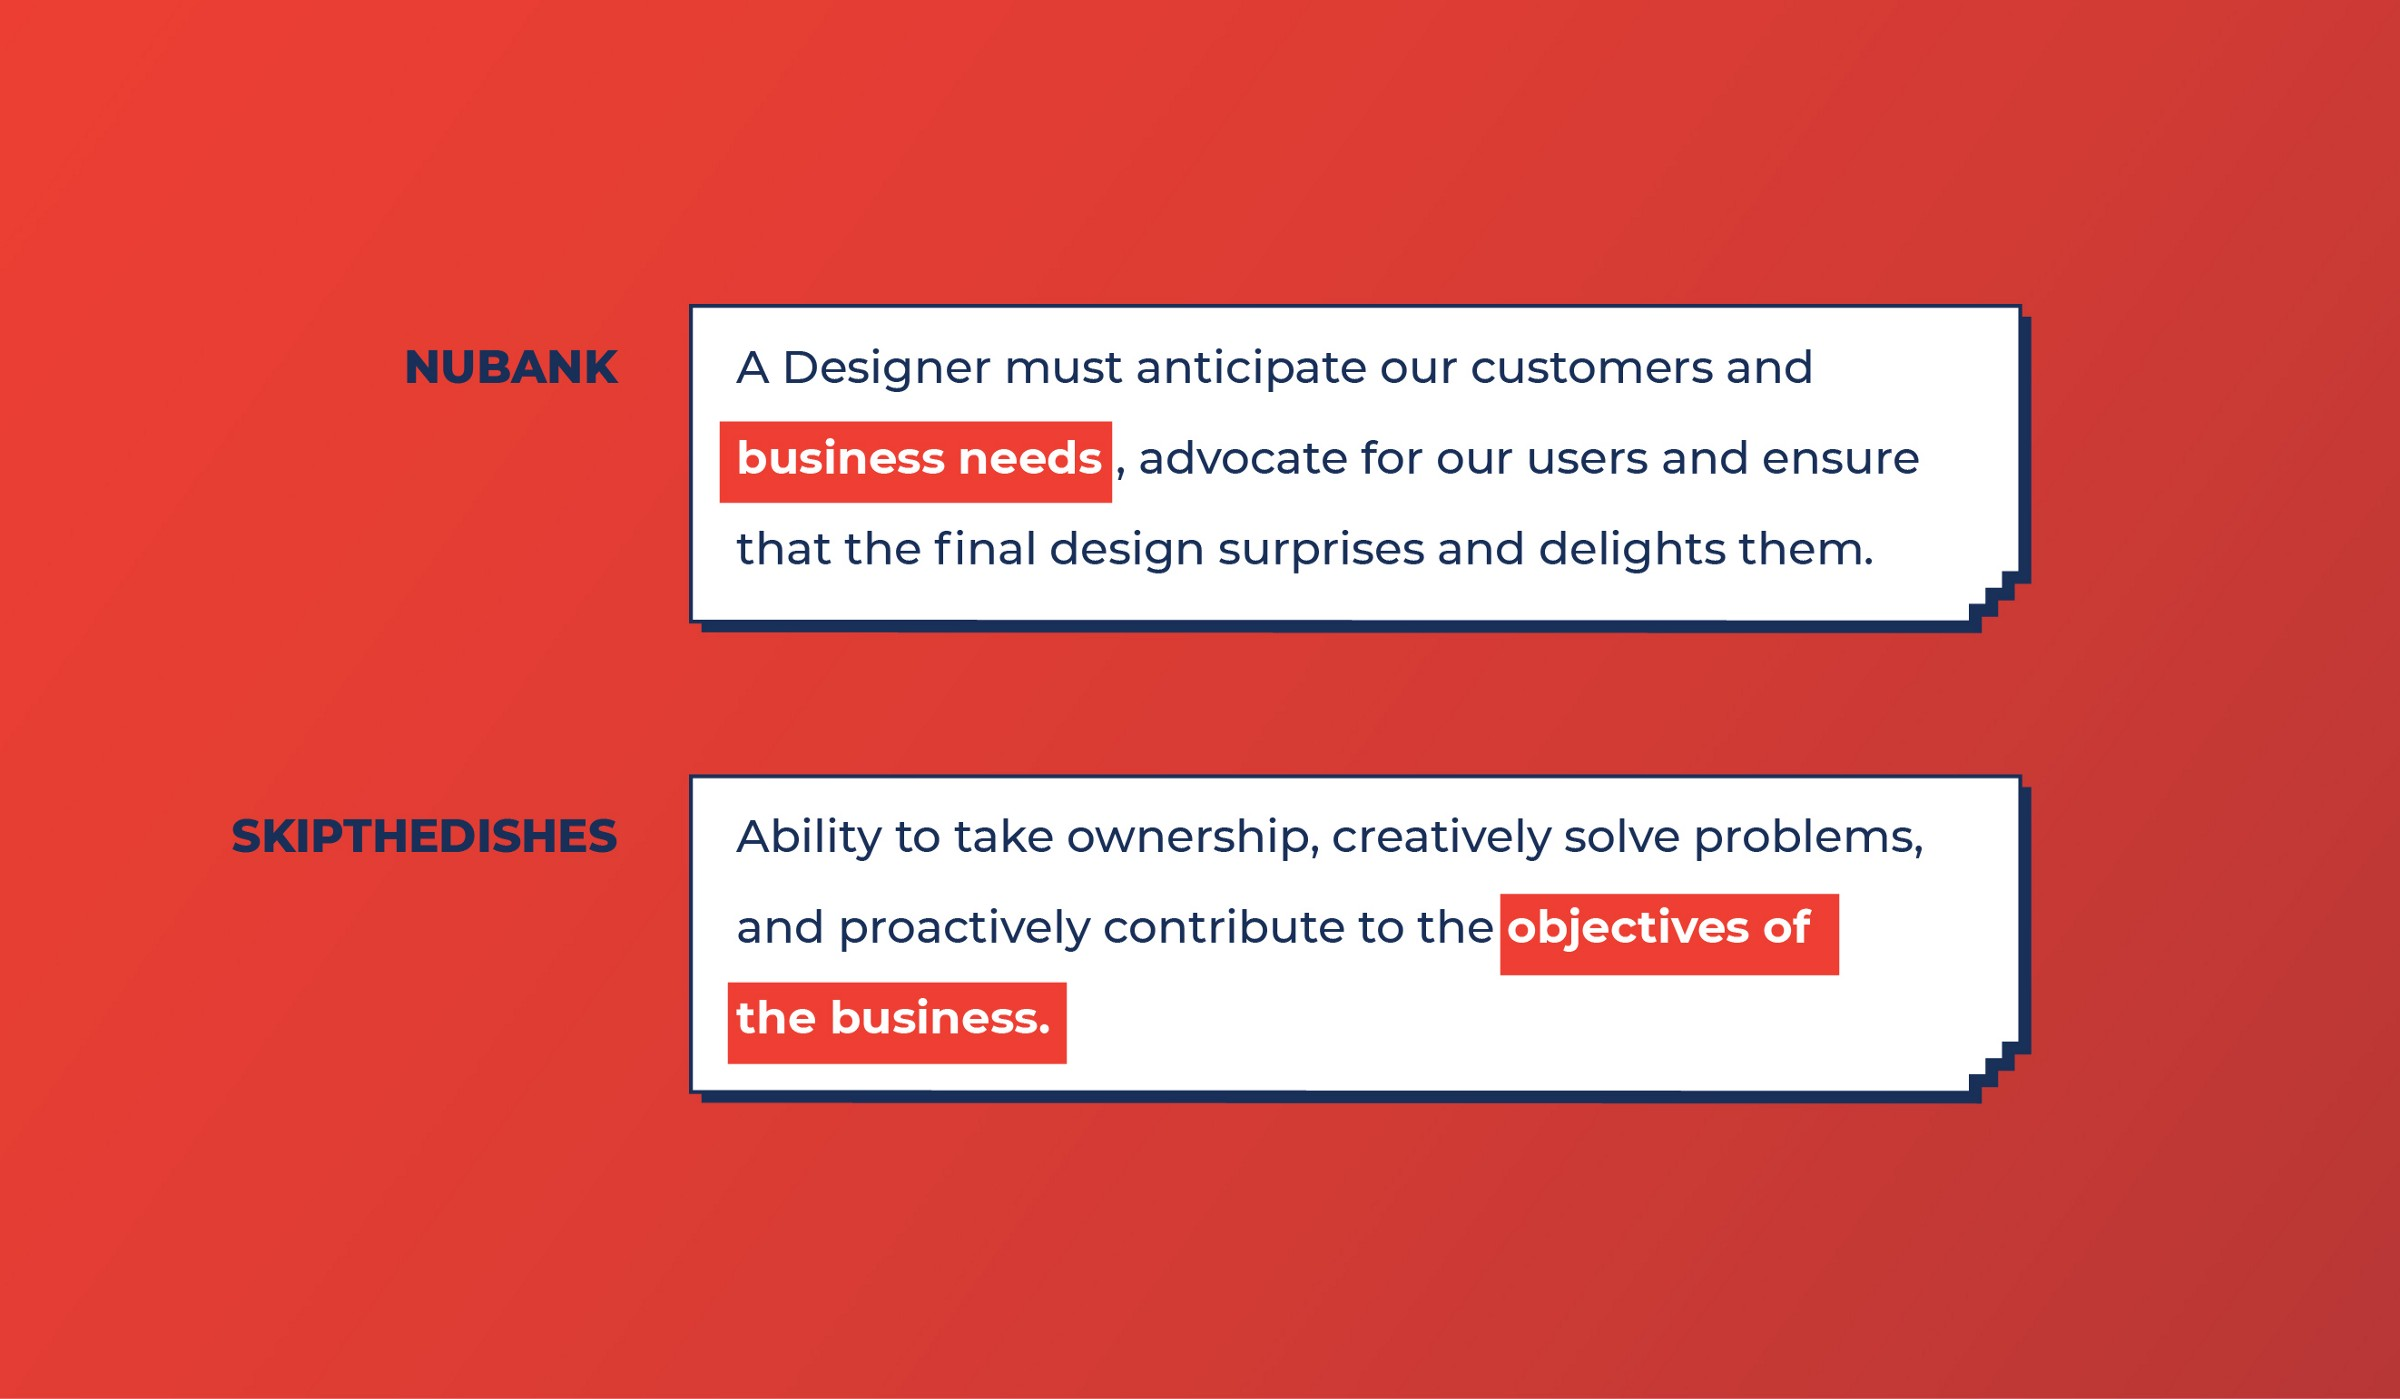 Nubank and Skipthedishes look for Business skills from Product designers